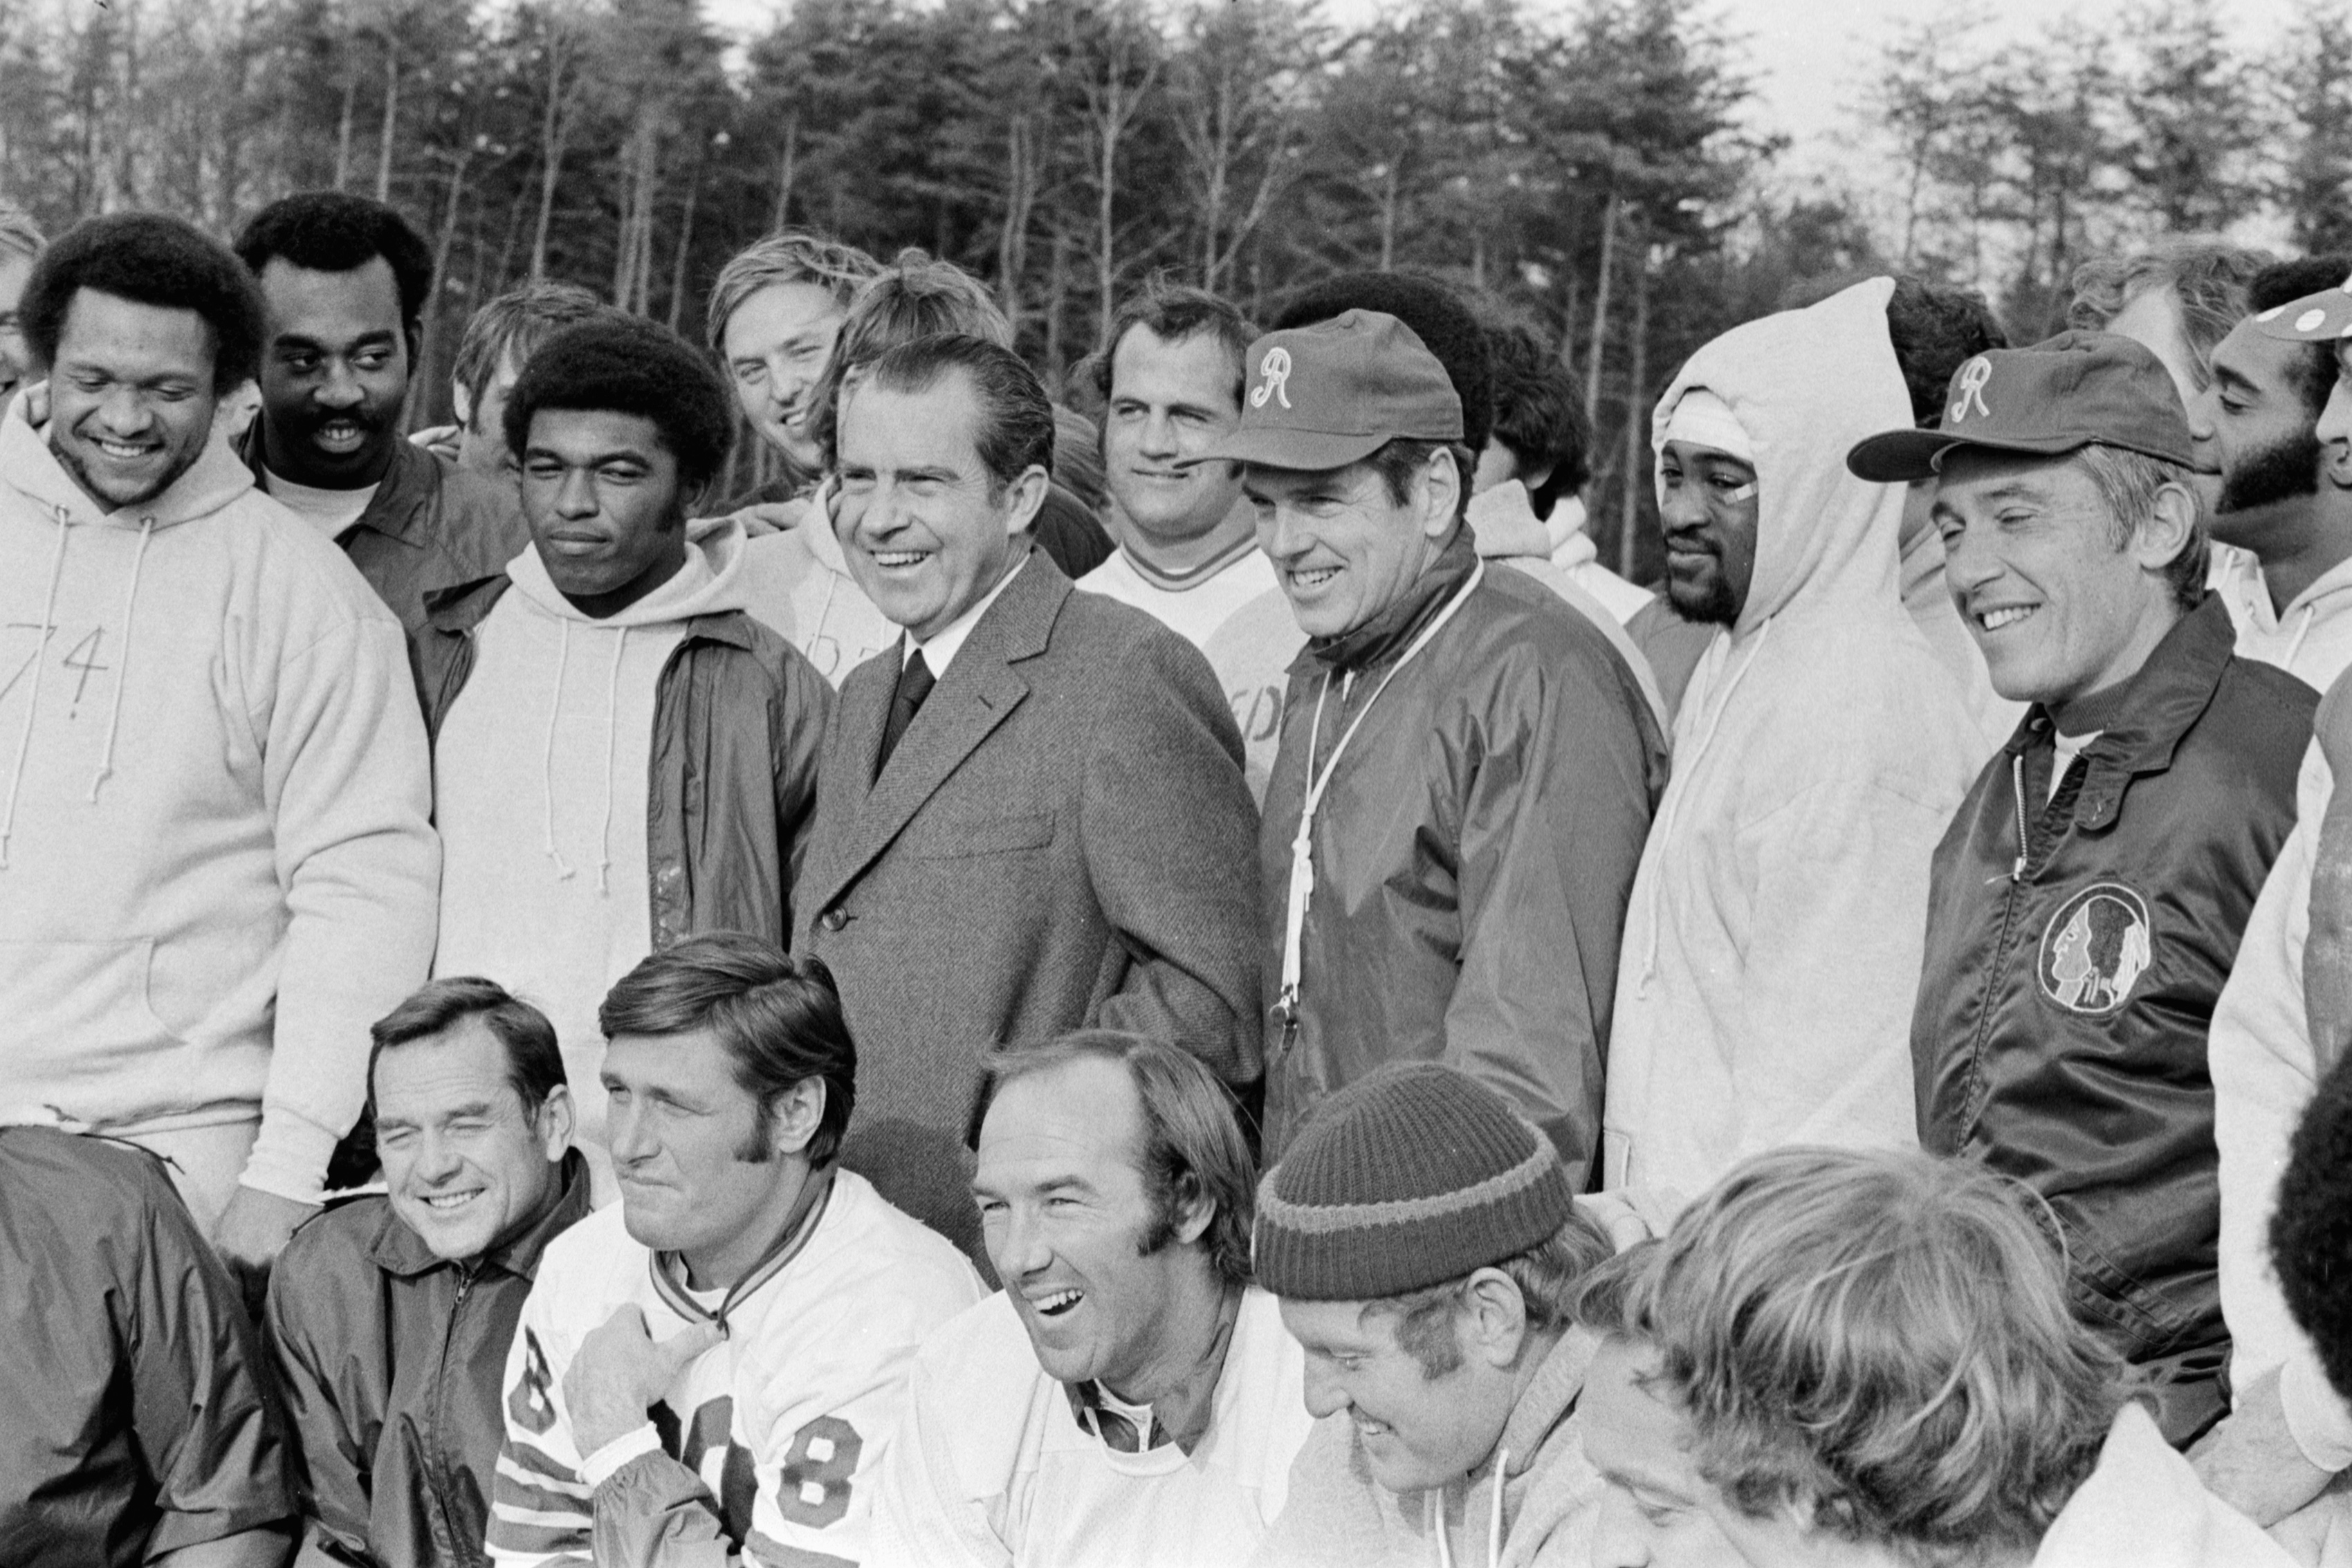 November 23, 1971. President Nixon with Redskins Coach George Allen, Redskins football players and the coaching staff including quarterbacks Billy Kilmer and Sonny Jurgenson.